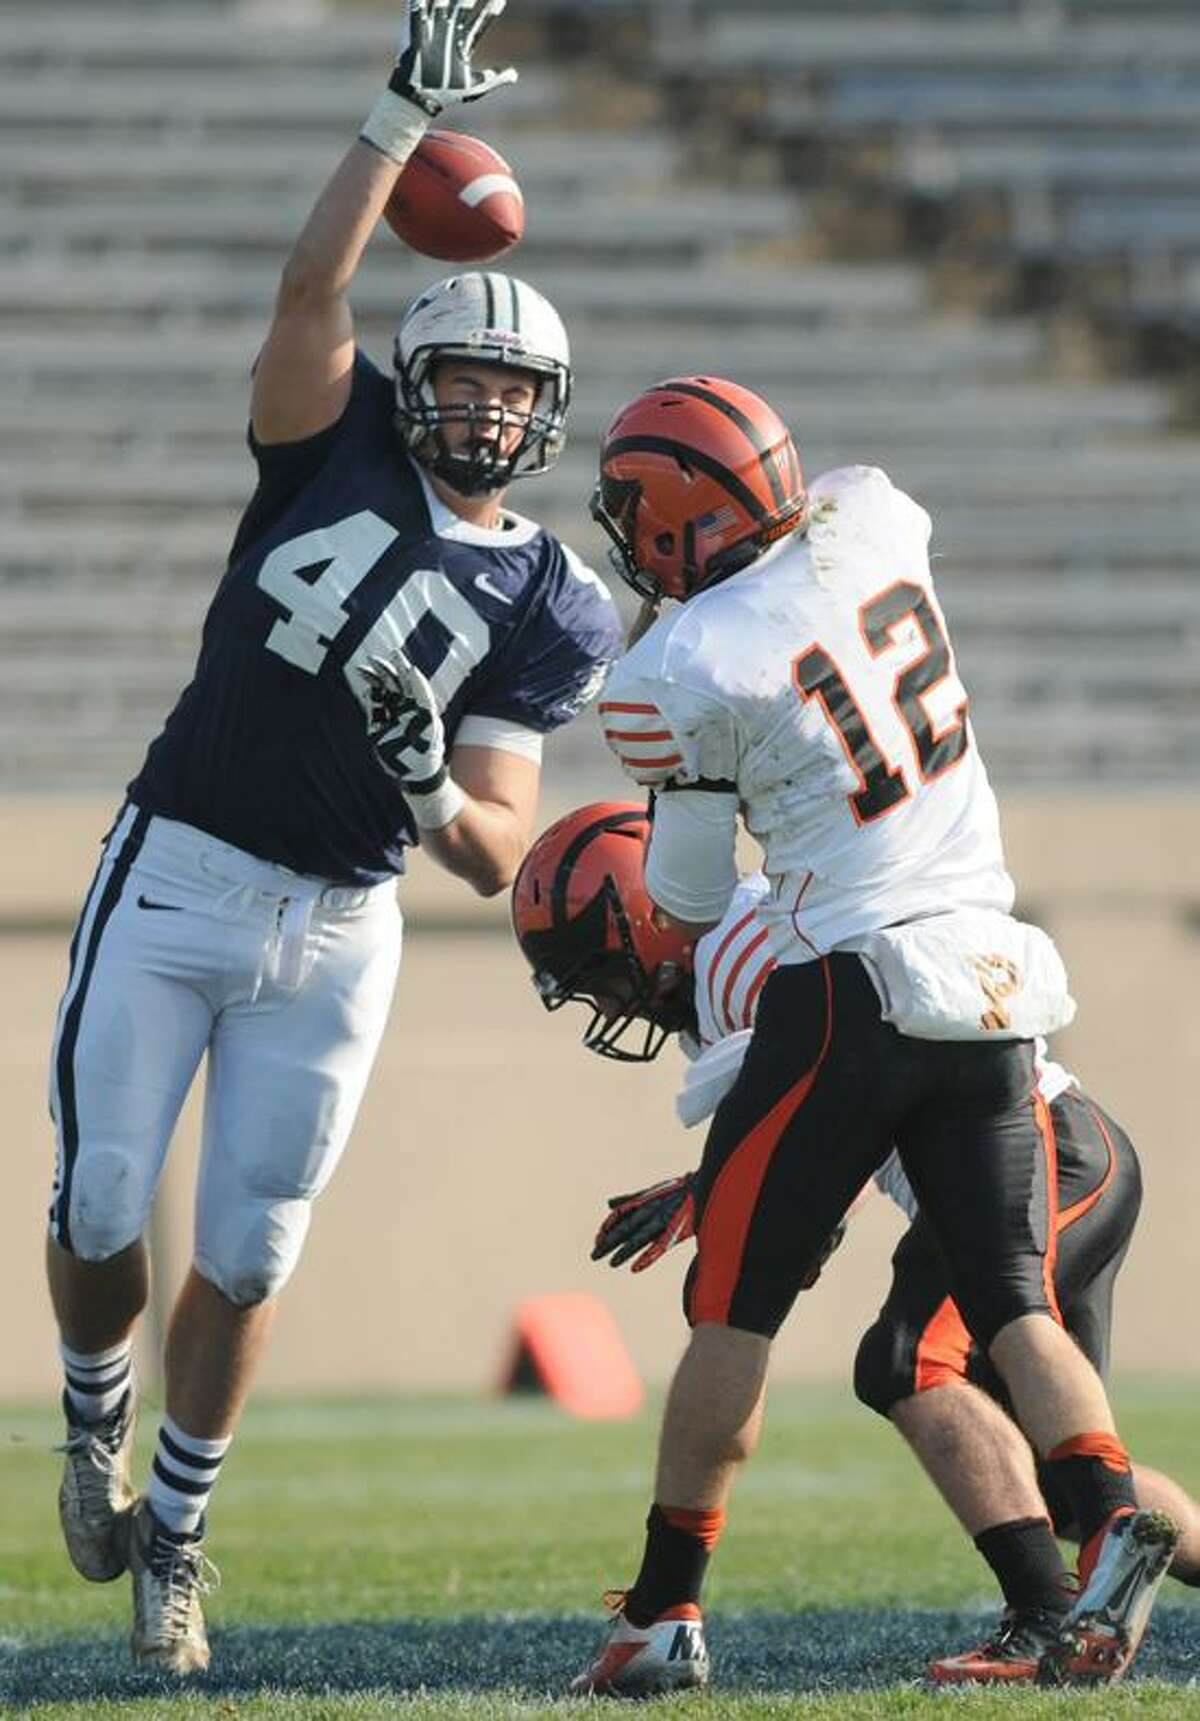 Beau Palin tries to knock down a pass by Princeton quarterback Connor Michelsen at Yale Bowl on Saturday, November 10, 2012. (Peter Hvizdak/New Haven Register)